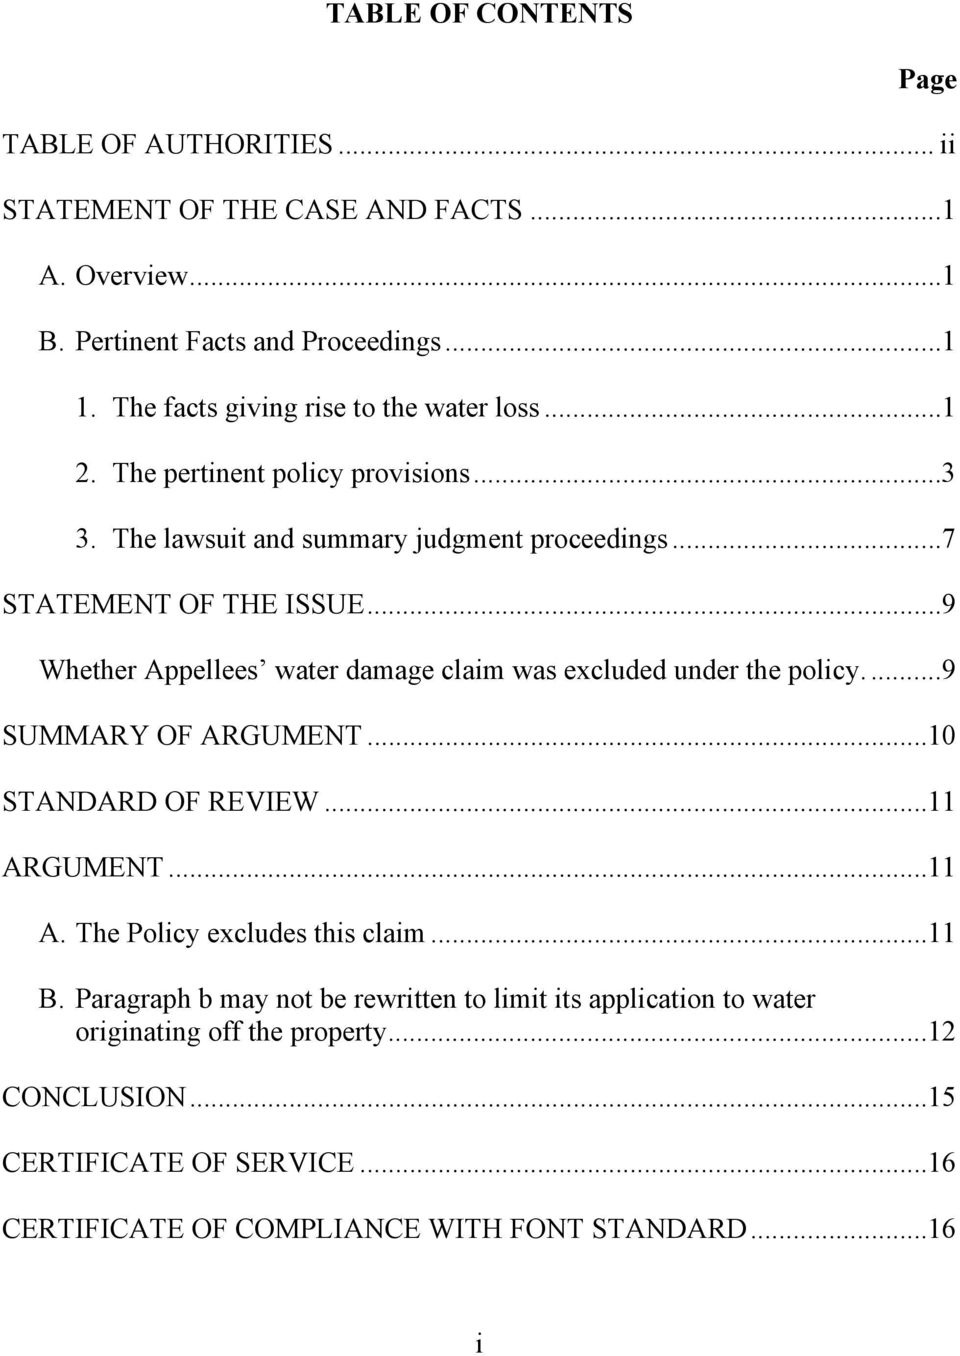 .. 9 Whether Appellees water damage claim was excluded under the policy.... 9 SUMMARY OF ARGUMENT... 10 STANDARD OF REVIEW... 11 ARGUMENT... 11 A. The Policy excludes this claim.